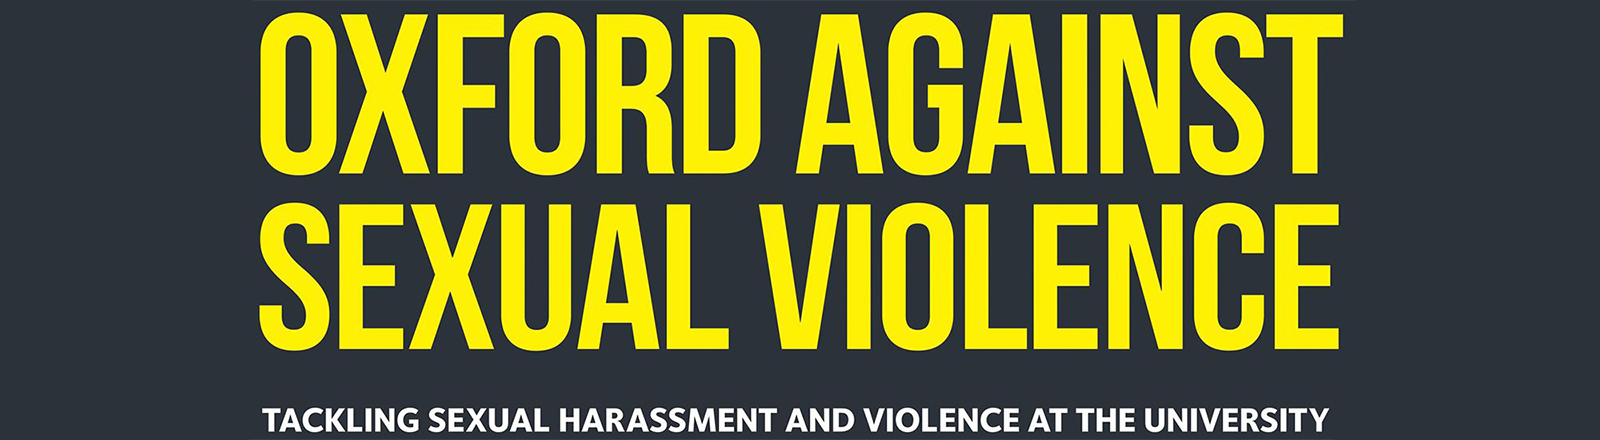 Oxford against sexual violence